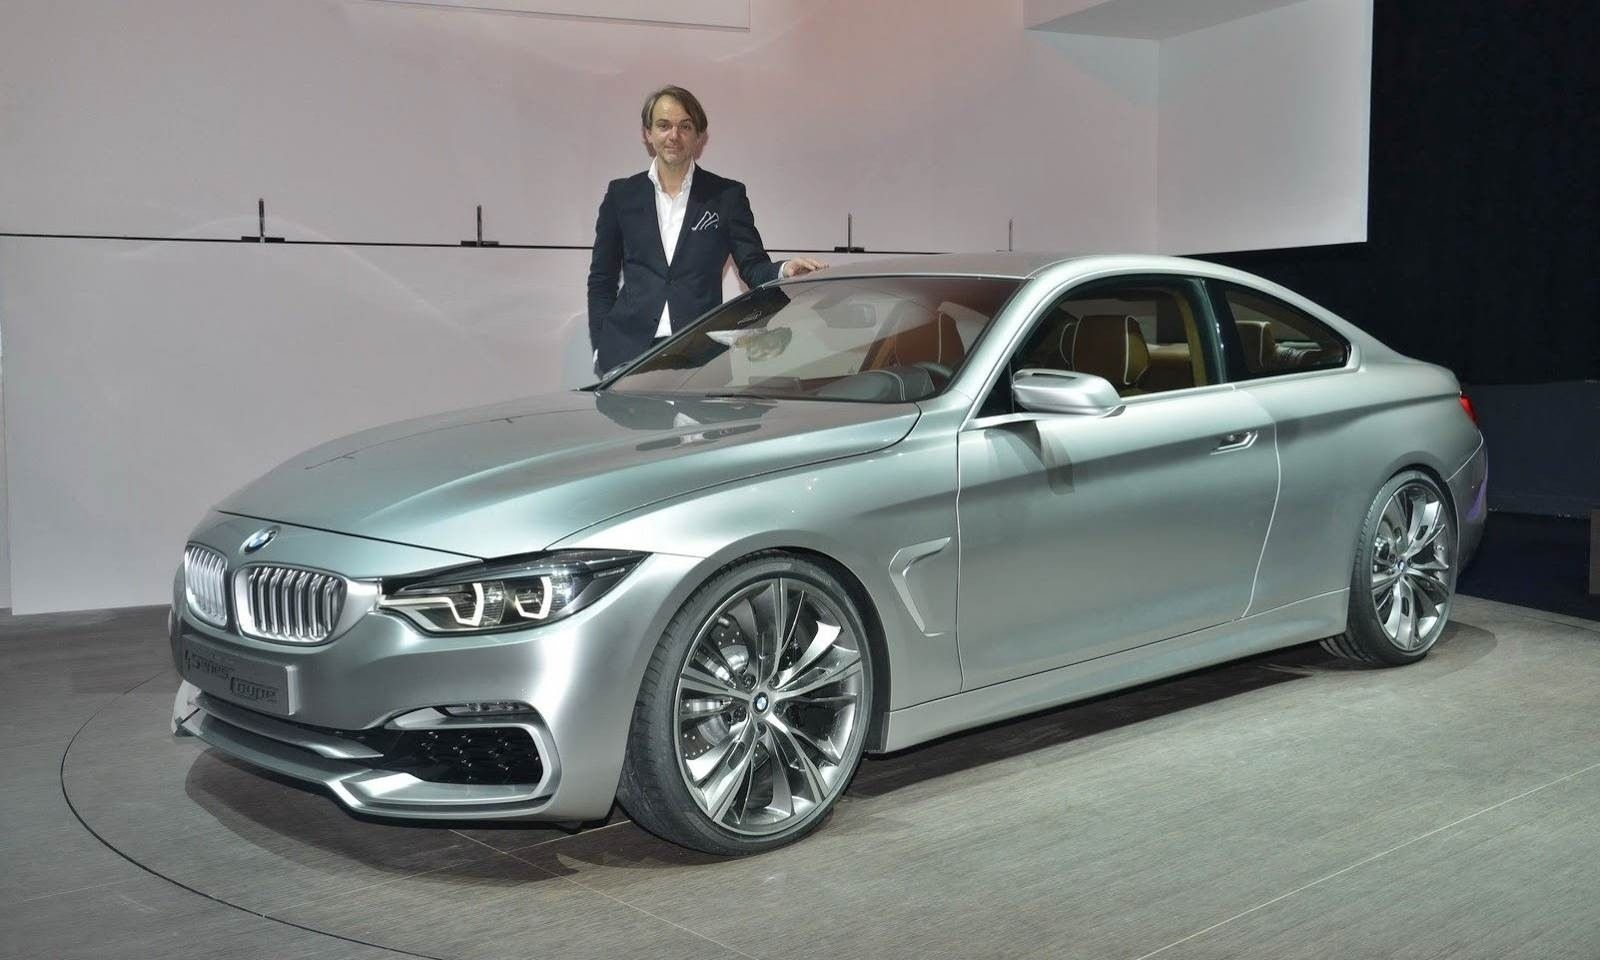 2019 Bmw M7 Review Specs And Release Date Redesign Price And Review Concept Redesign And Review Release Date Price And Review Picture Release Date Araba